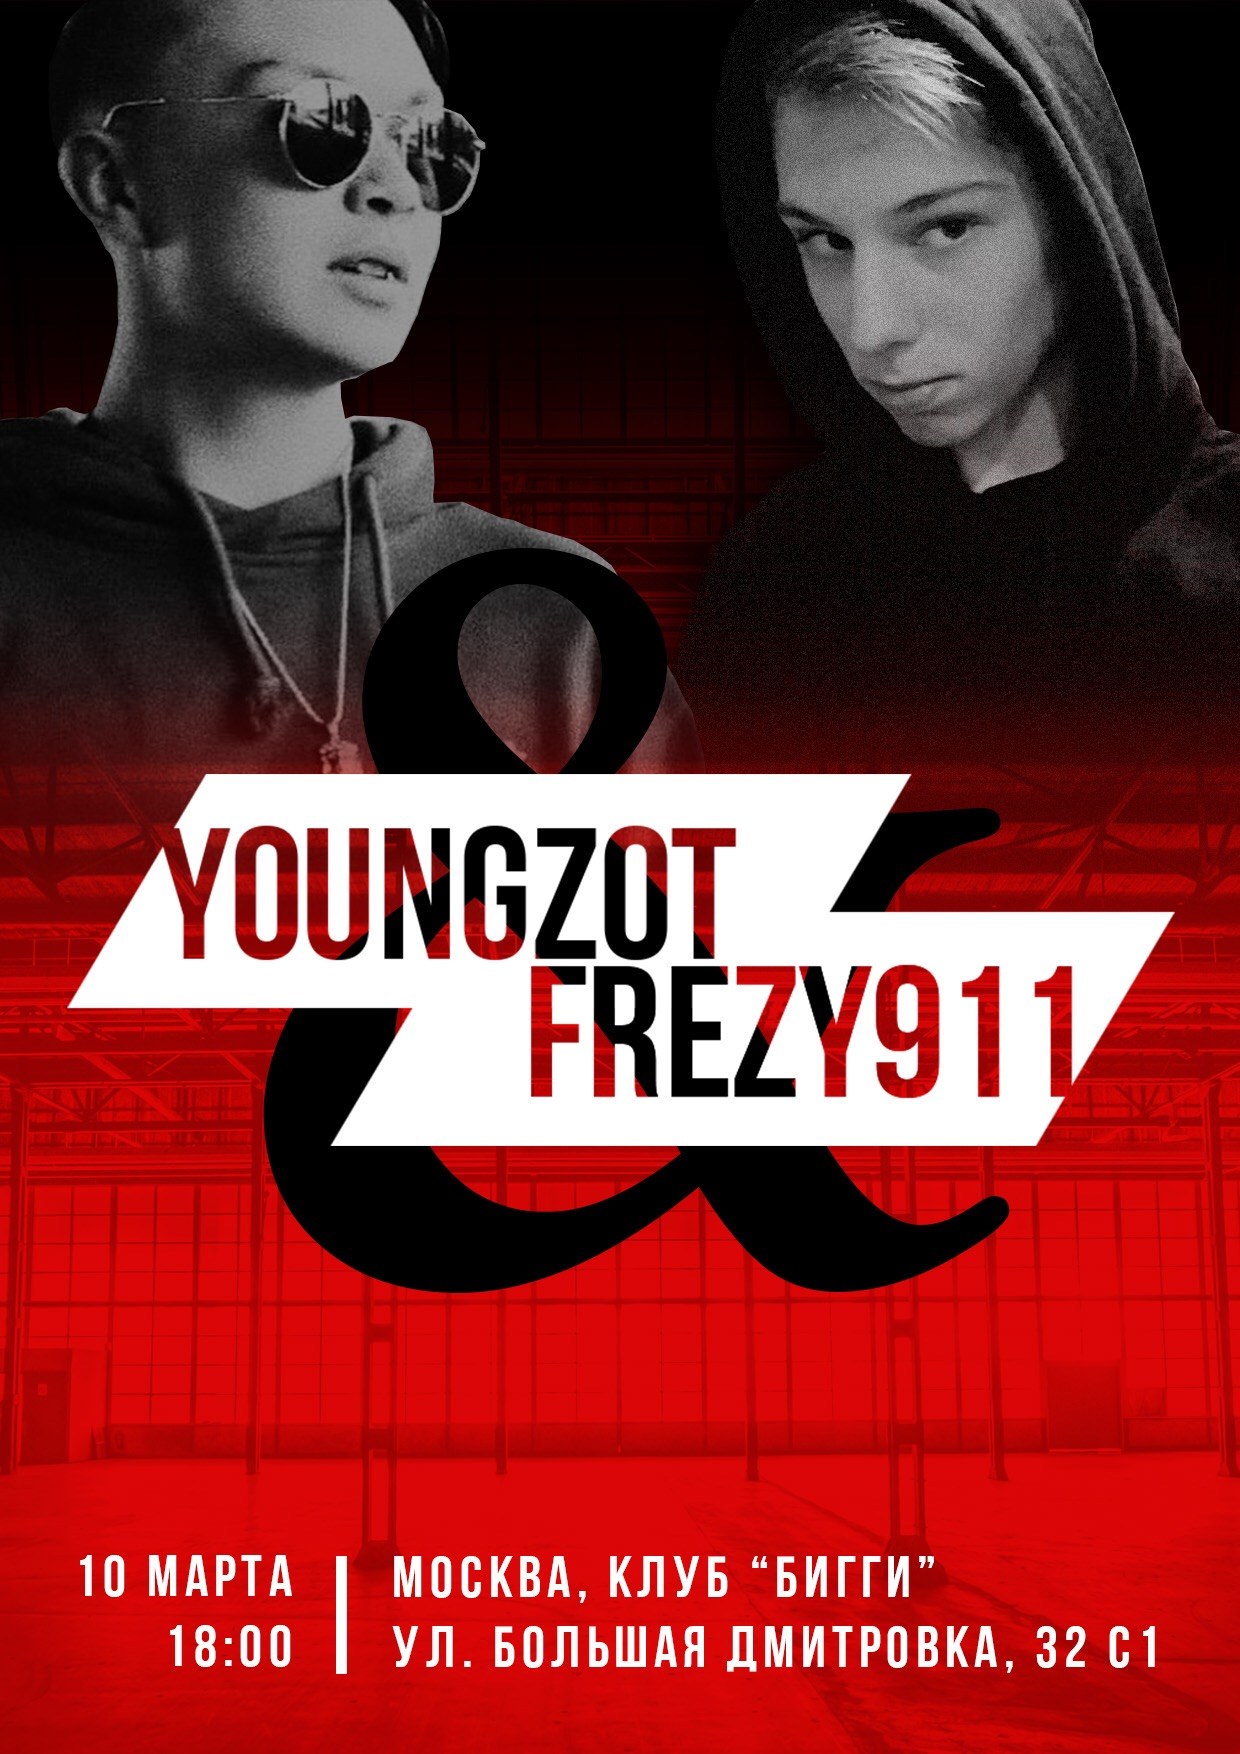 YOUNGZOT & FREZY911